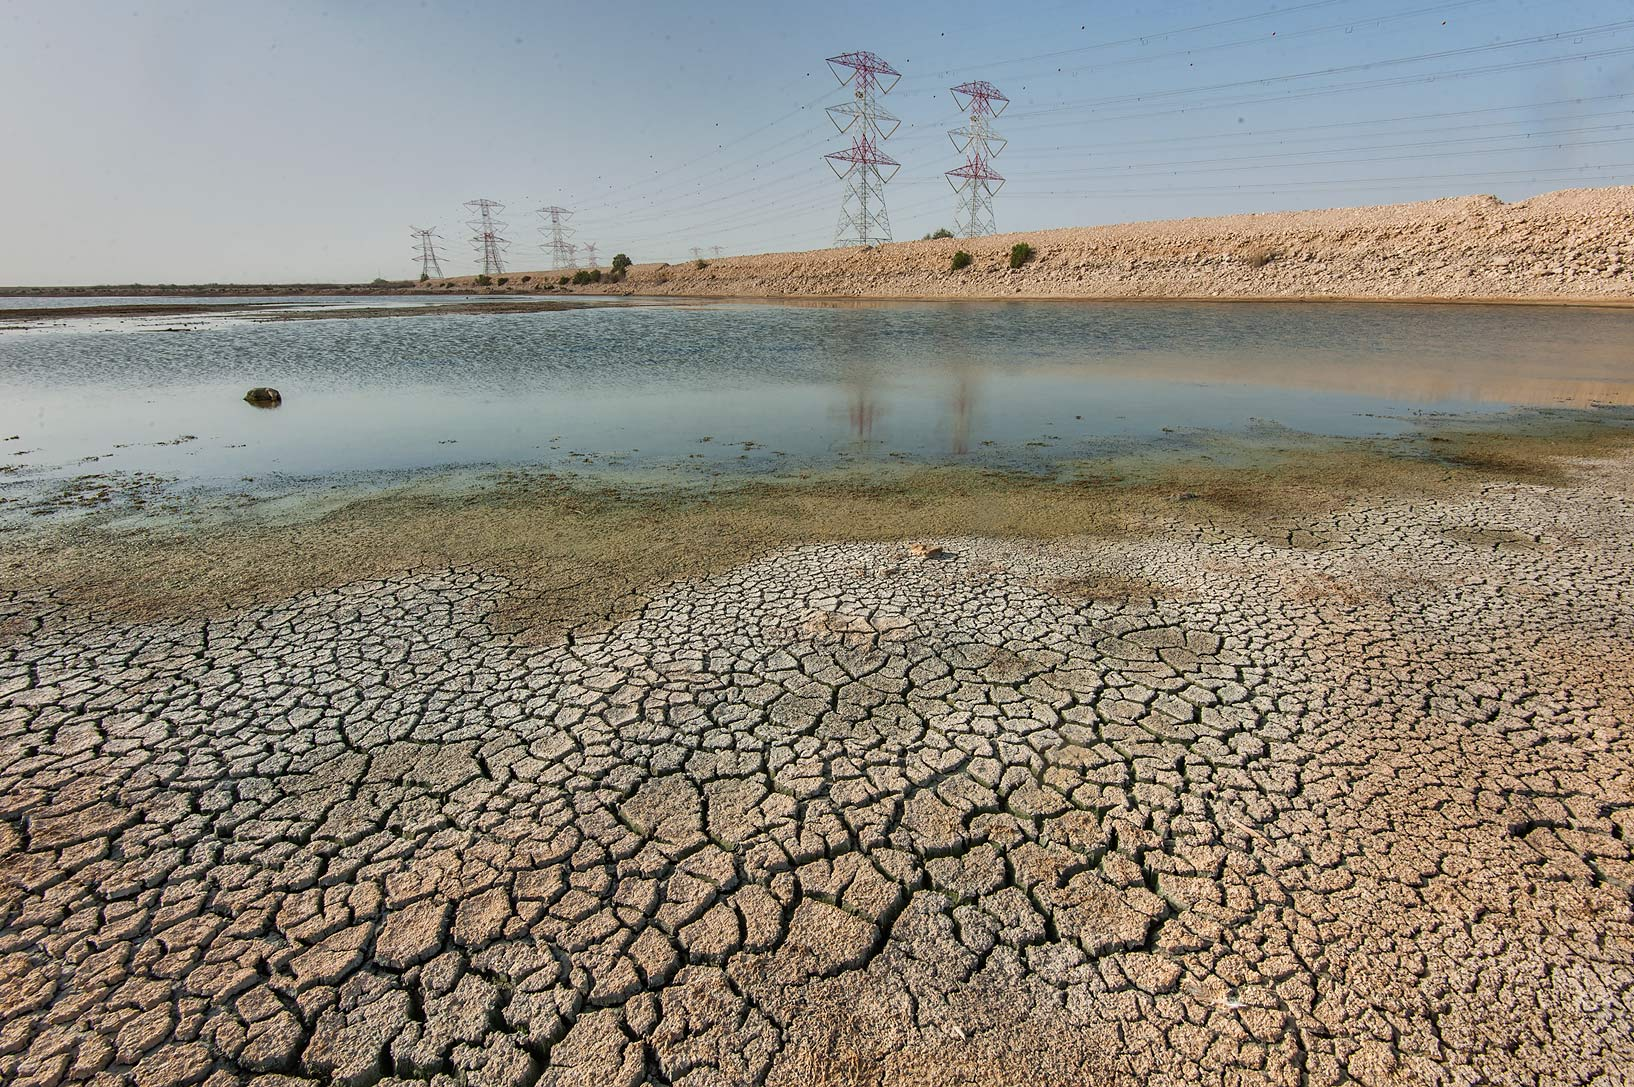 Shrinking water reservoir of Abu Nakhla jail ponds (sewage lagoons). Qatar